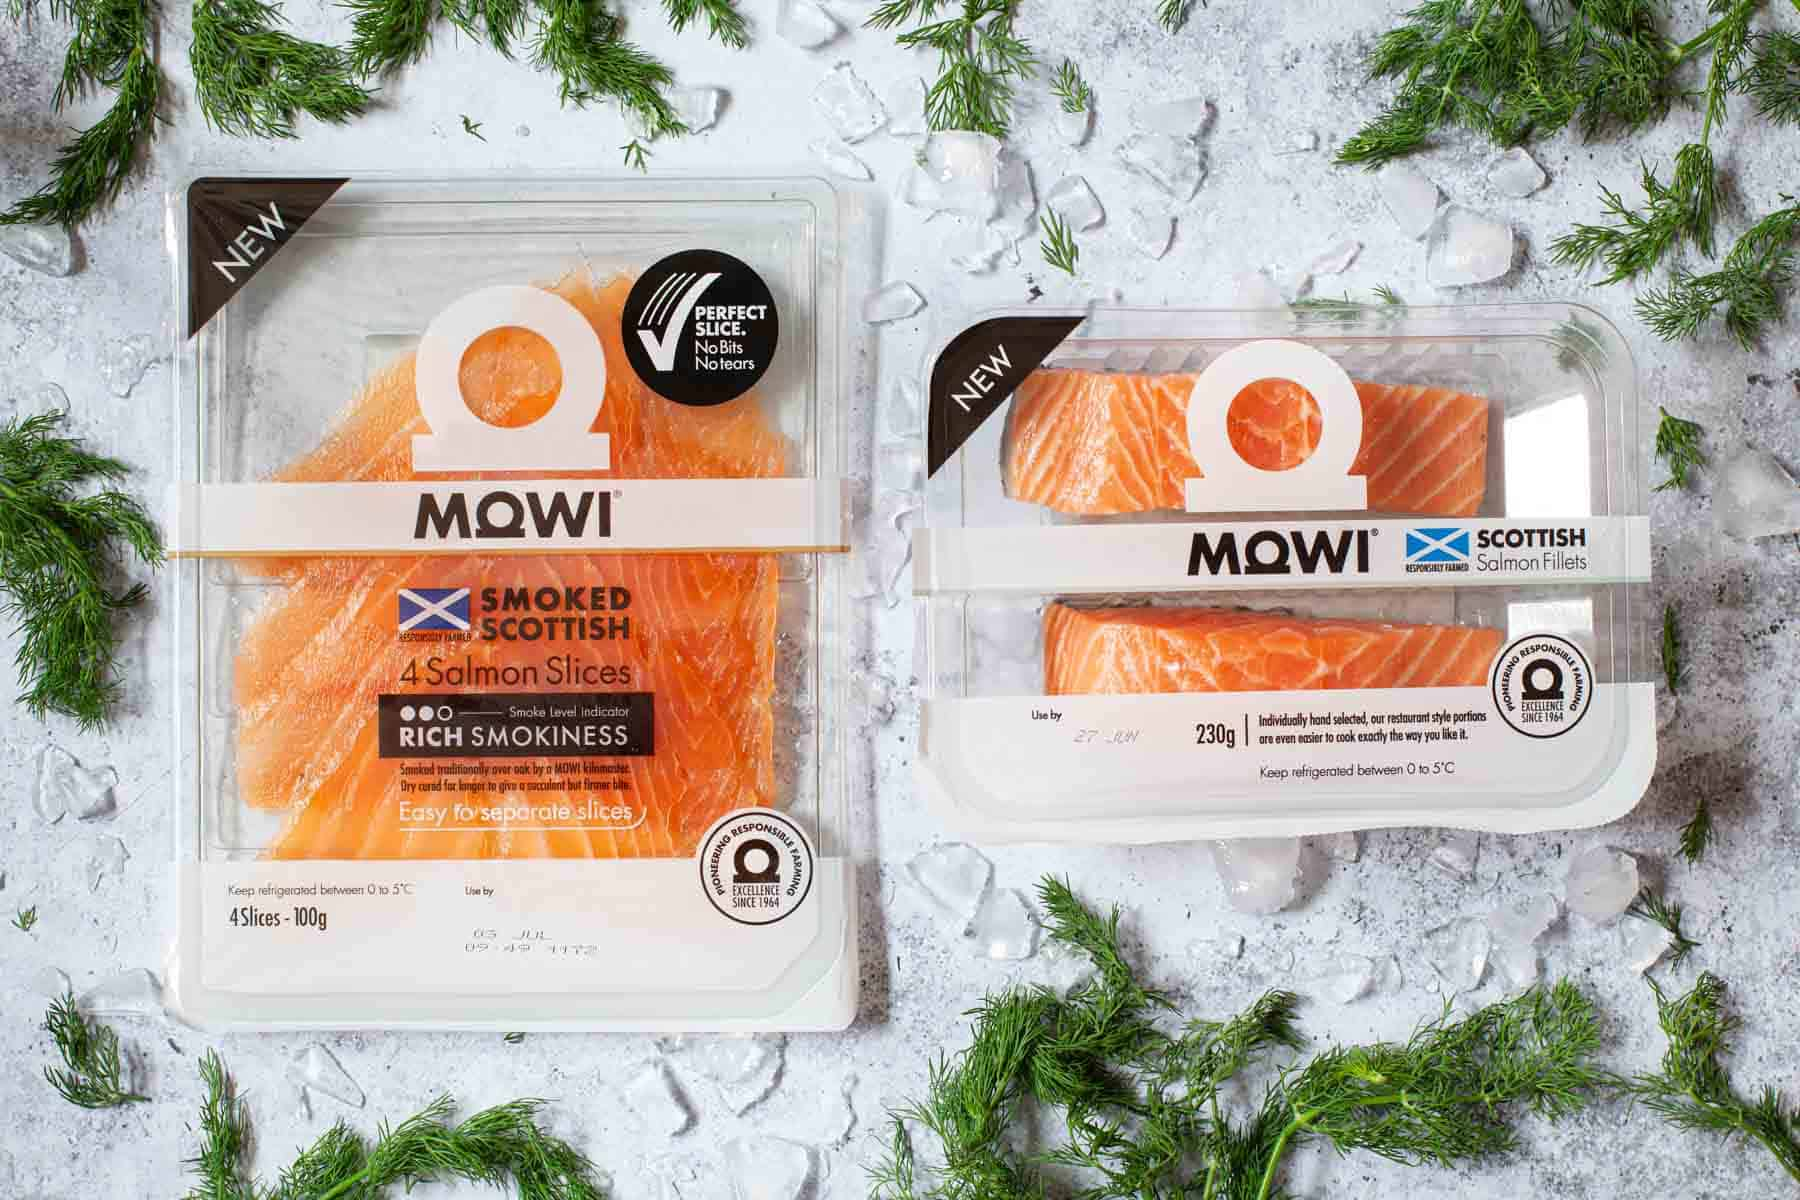 Raw salmon fillets and smoked salmon in packaging